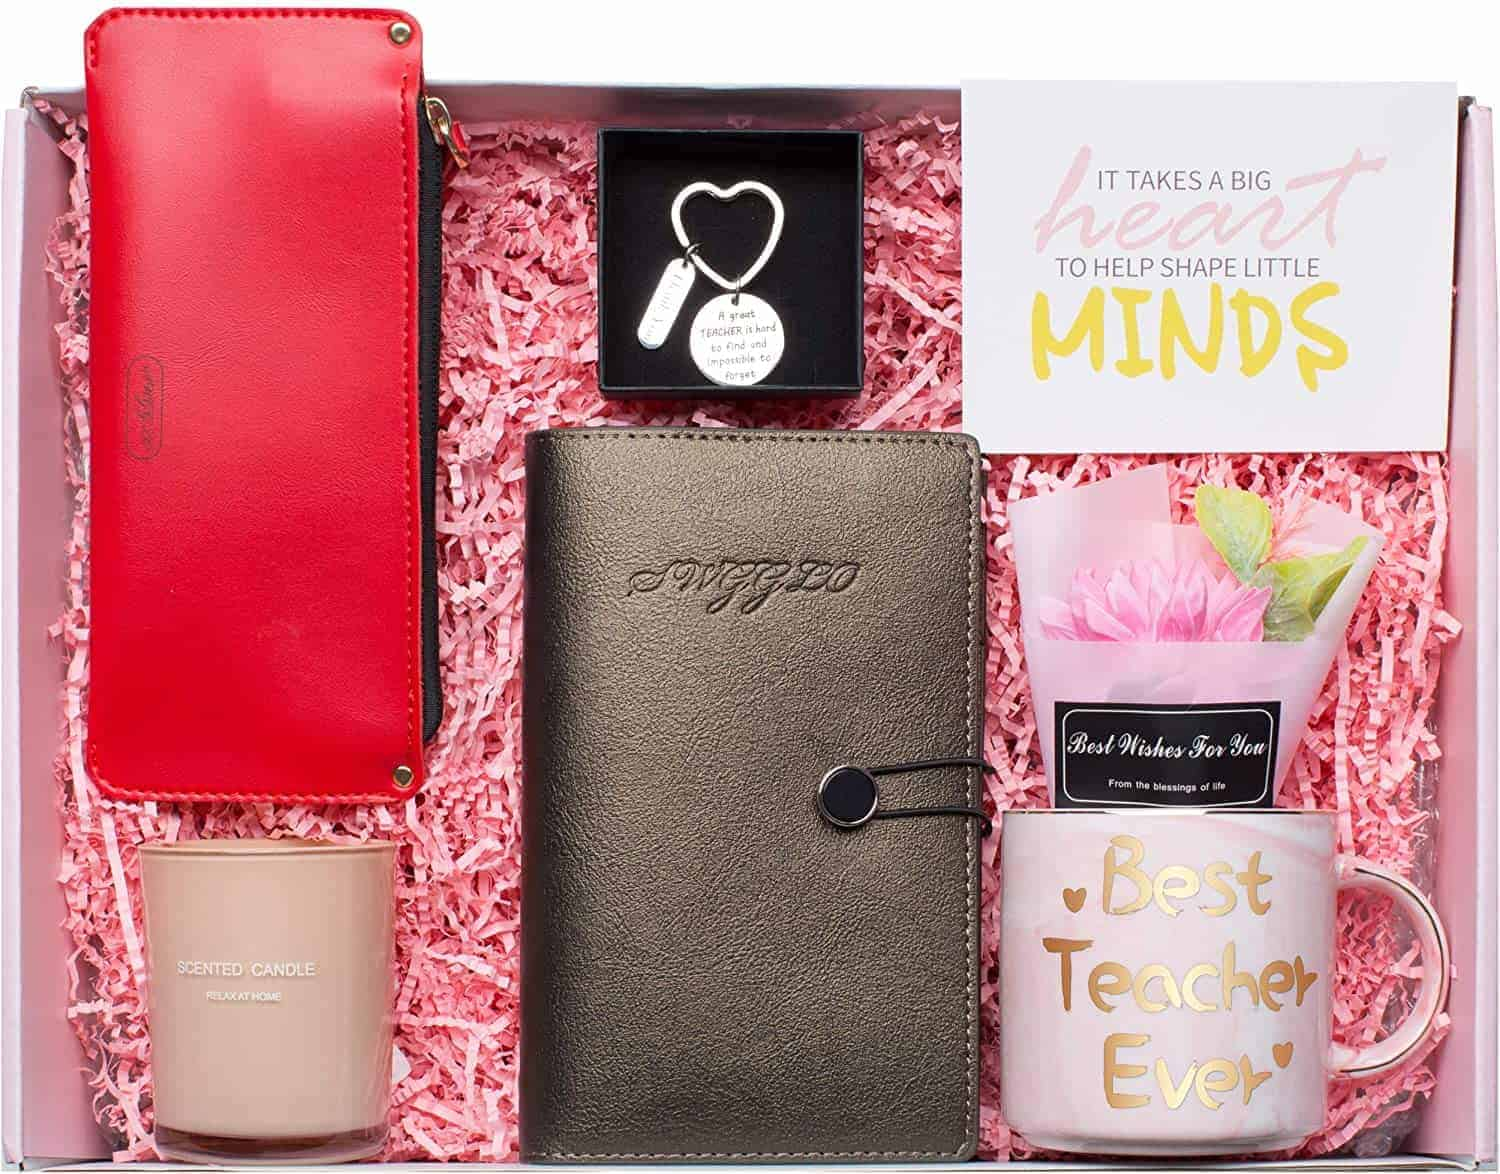 8 Amazing Teacher Appreciation Gifts For The End Of The Year   kimschob.com